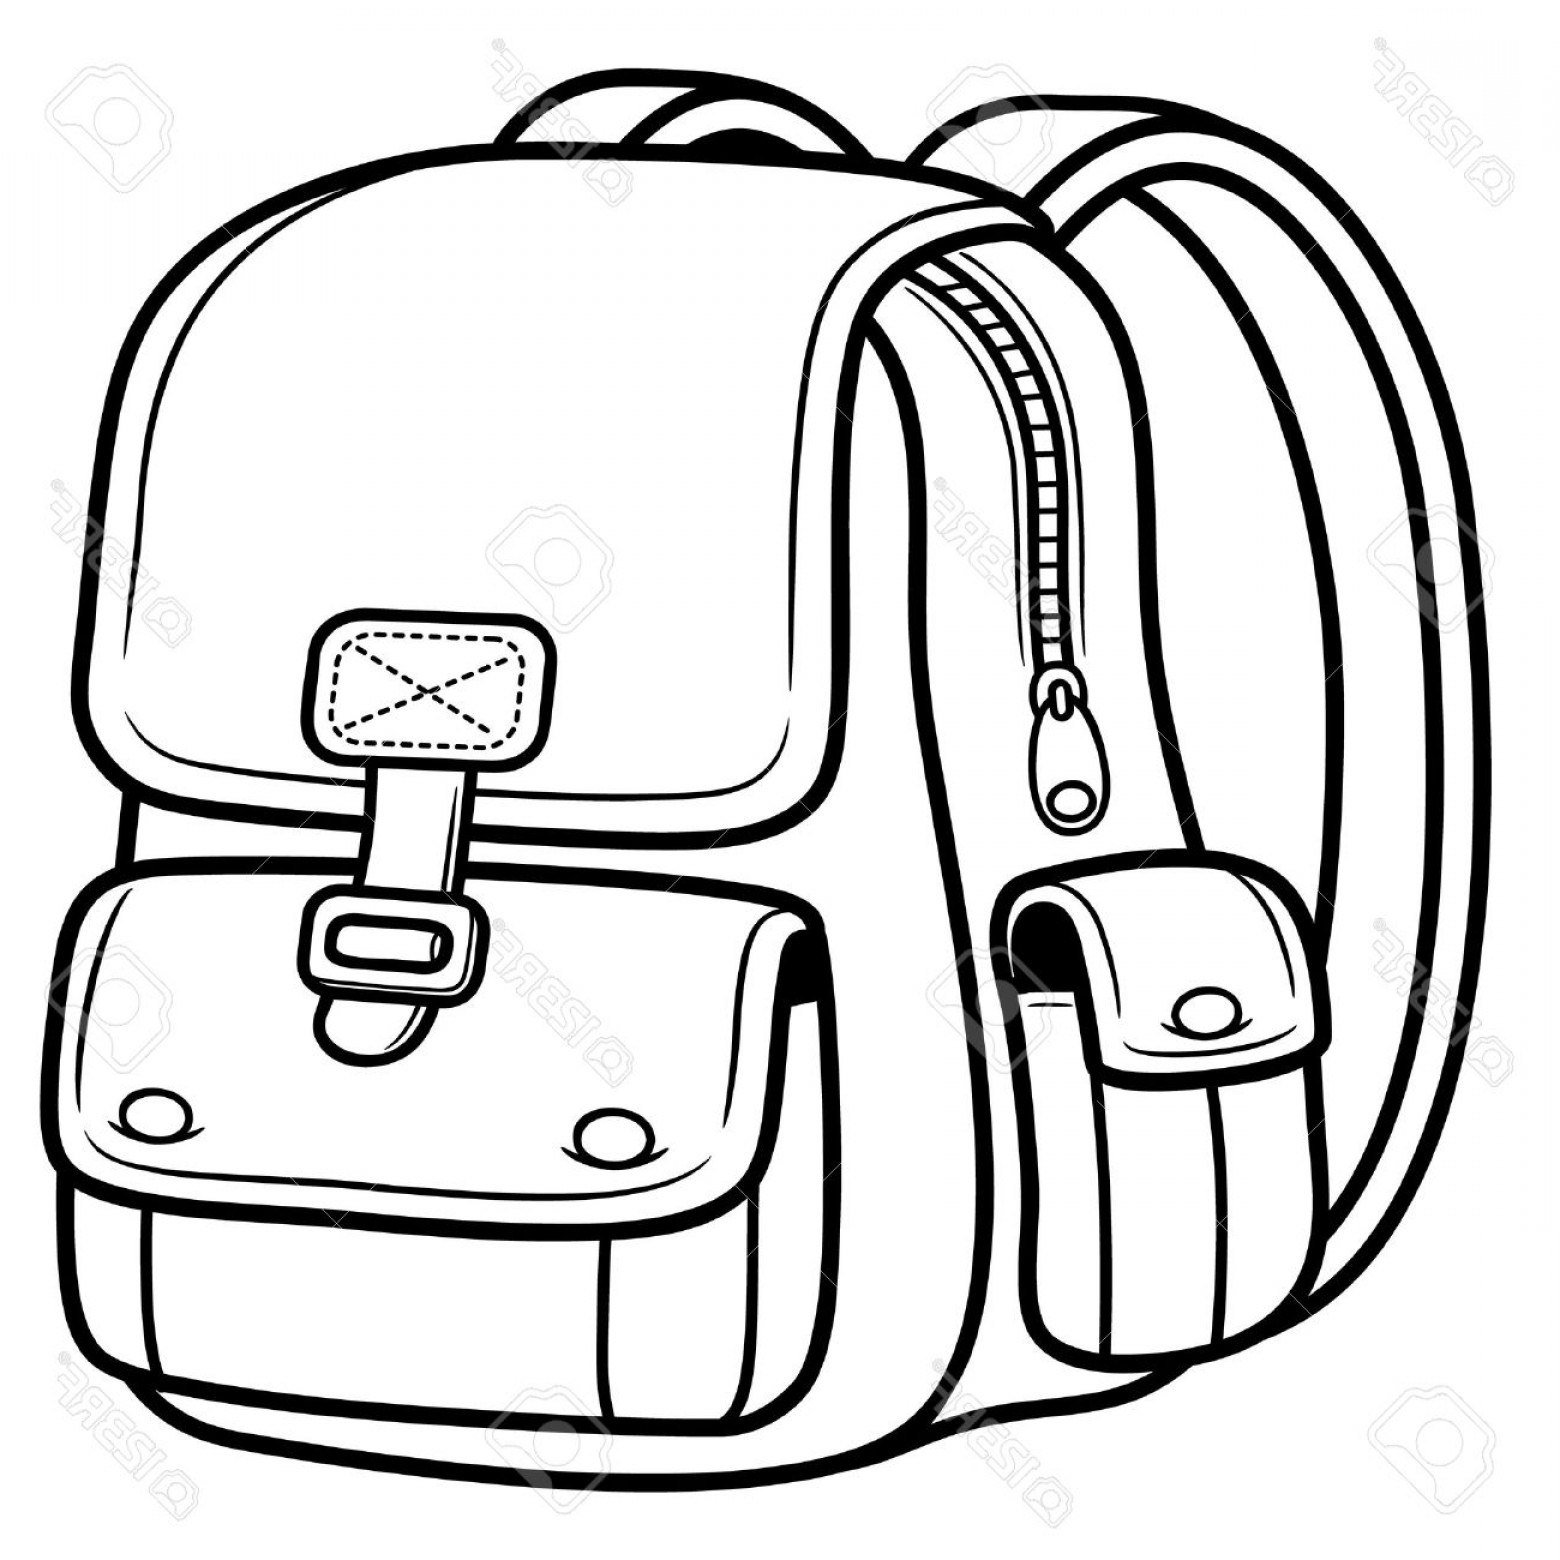 Bag black and white. Briefcase clipart outline